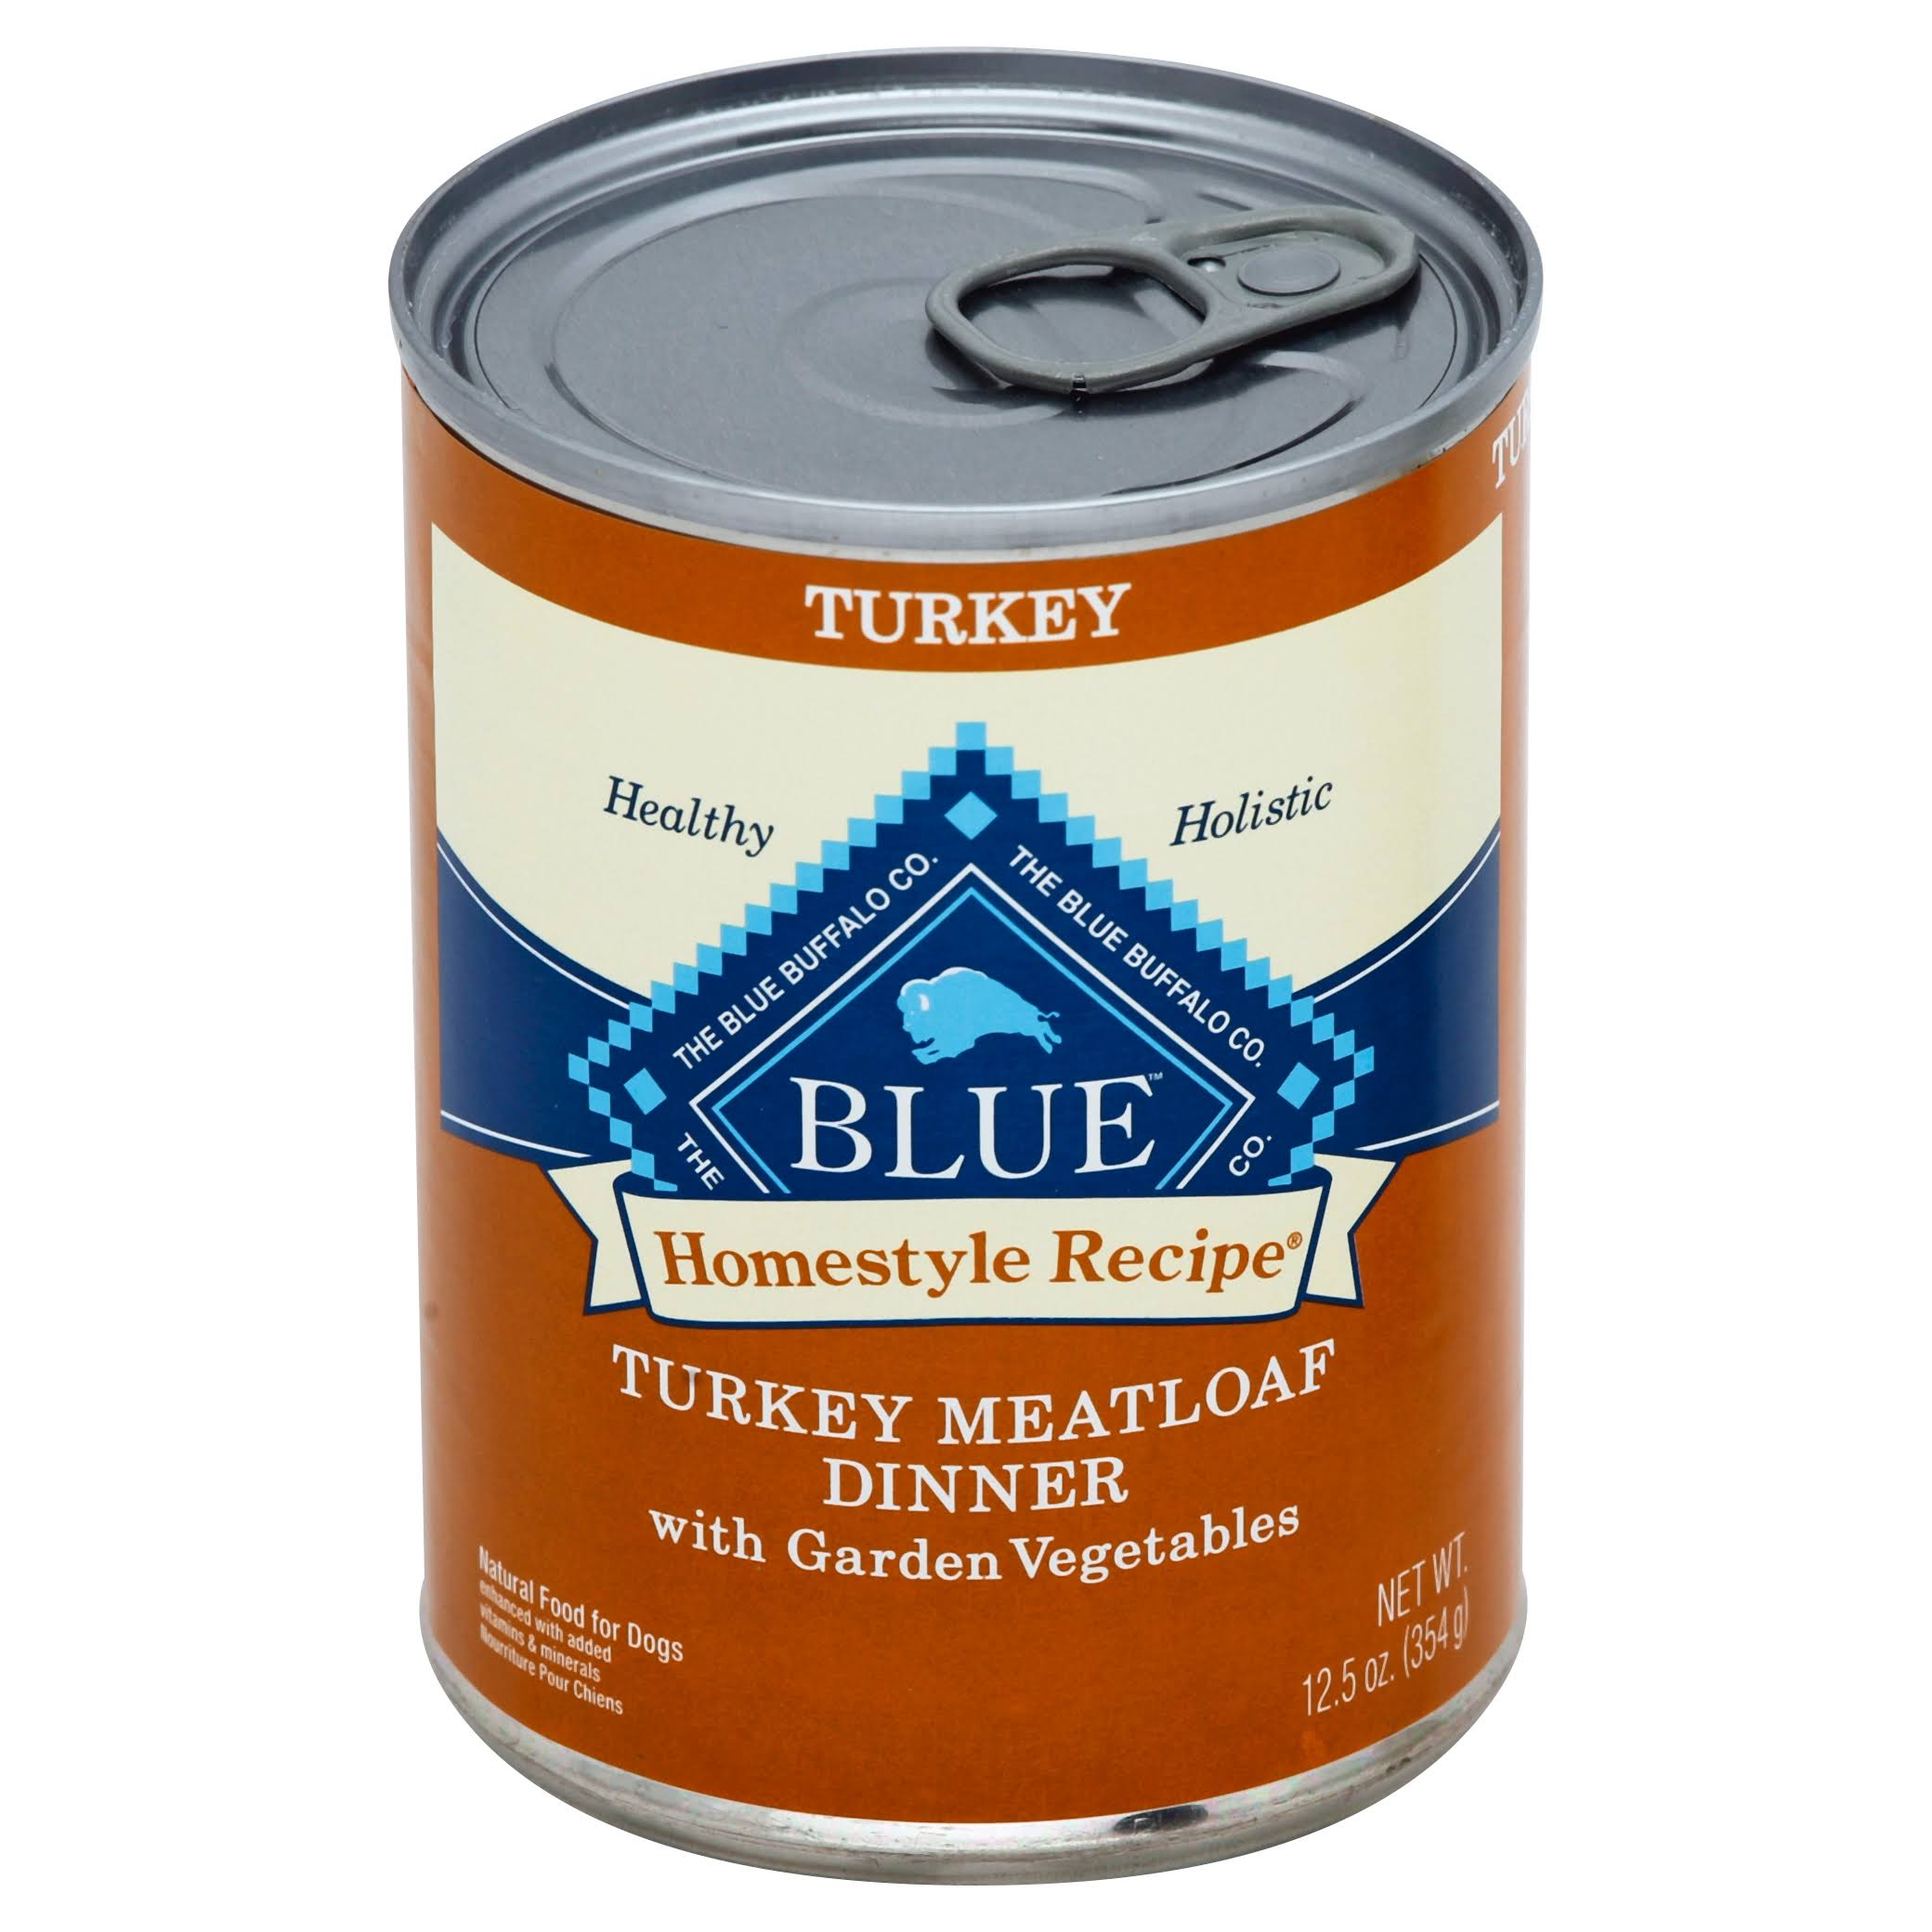 Blue Buffalo Homestyle Recipe Canned Dog Food - Turkey Meatloaf Dinner